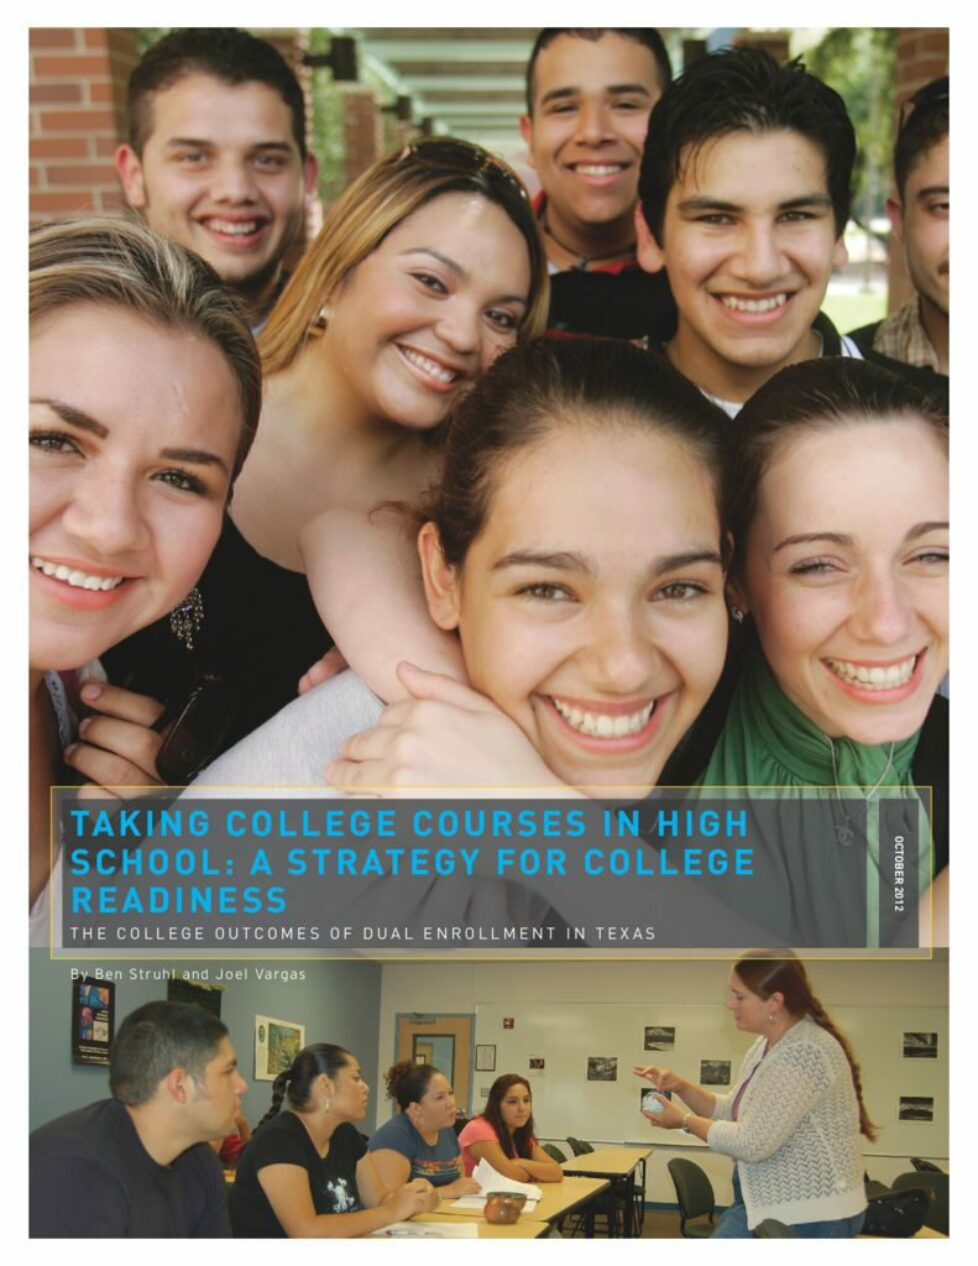 thumbnail of Taking College Courses in High School: A Strategy for College Readiness (The College Outcomes of Dual Enrollment in Texas)